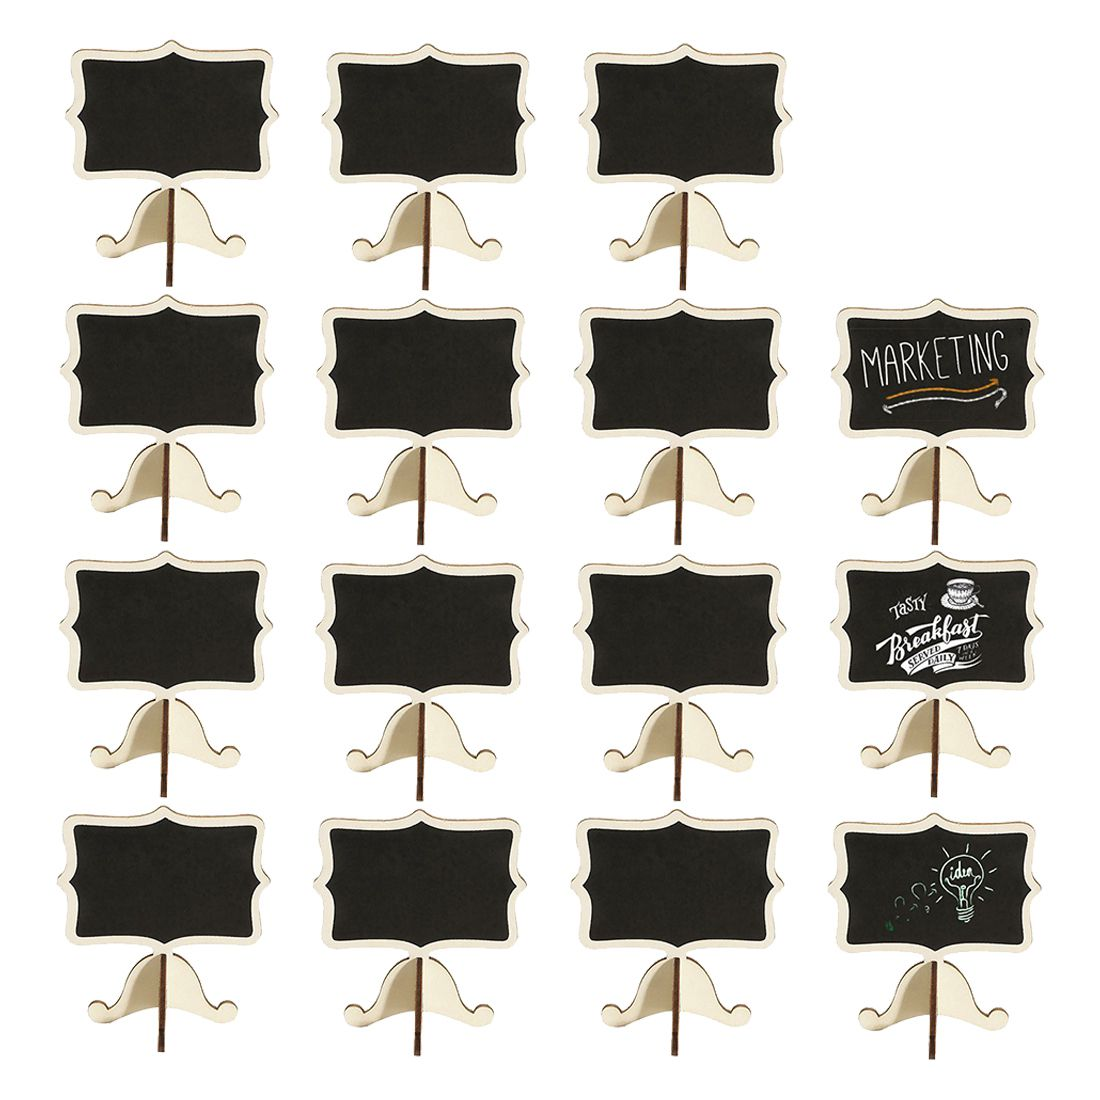 15 Pack Mini Chalkboards Place Cards with Easel Stand - Wood Rectangle Small Chalkboard Signs for Wedding, Birthday Parties, T15 Pack Mini Chalkboards Place Cards with Easel Stand - Wood Rectangle Small Chalkboard Signs for Wedding, Birthday Parties, T